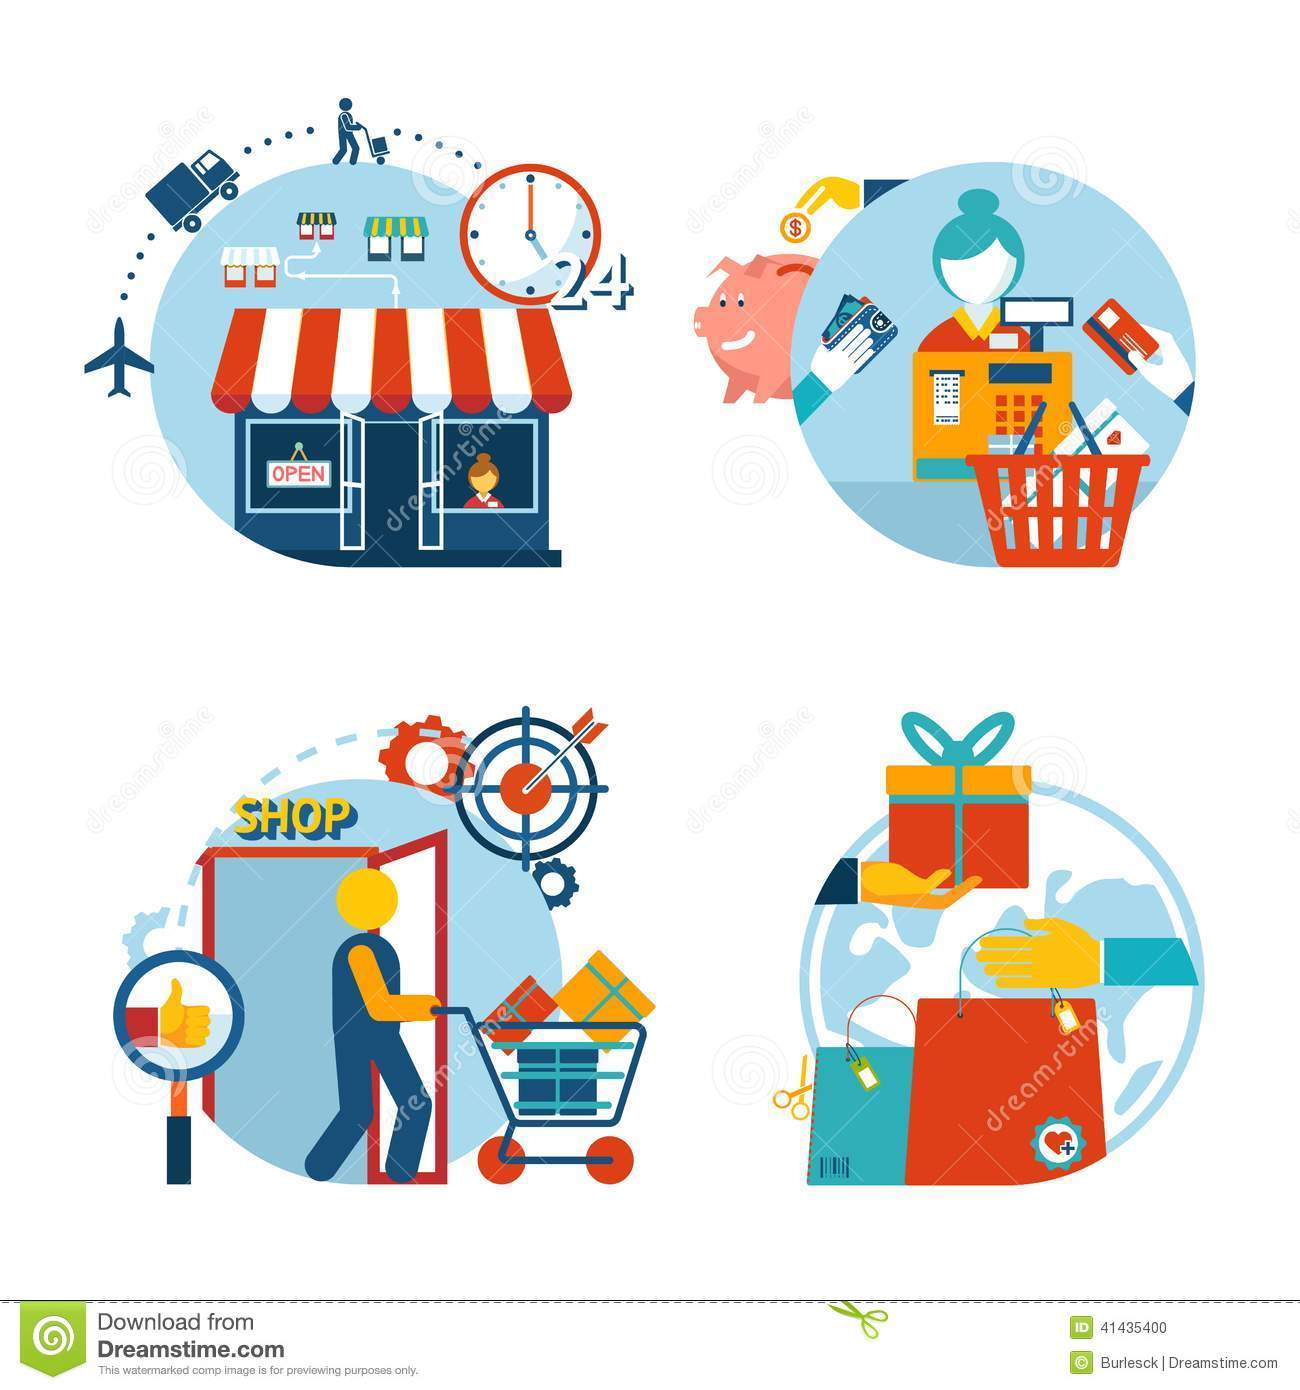 Picking with Delivery This in store option is the combination of the delivery service with the picking service starting at $ We'll collect the products on your shopping list from throughout the store and deliver (by an independent service provider) everything to your home or business.